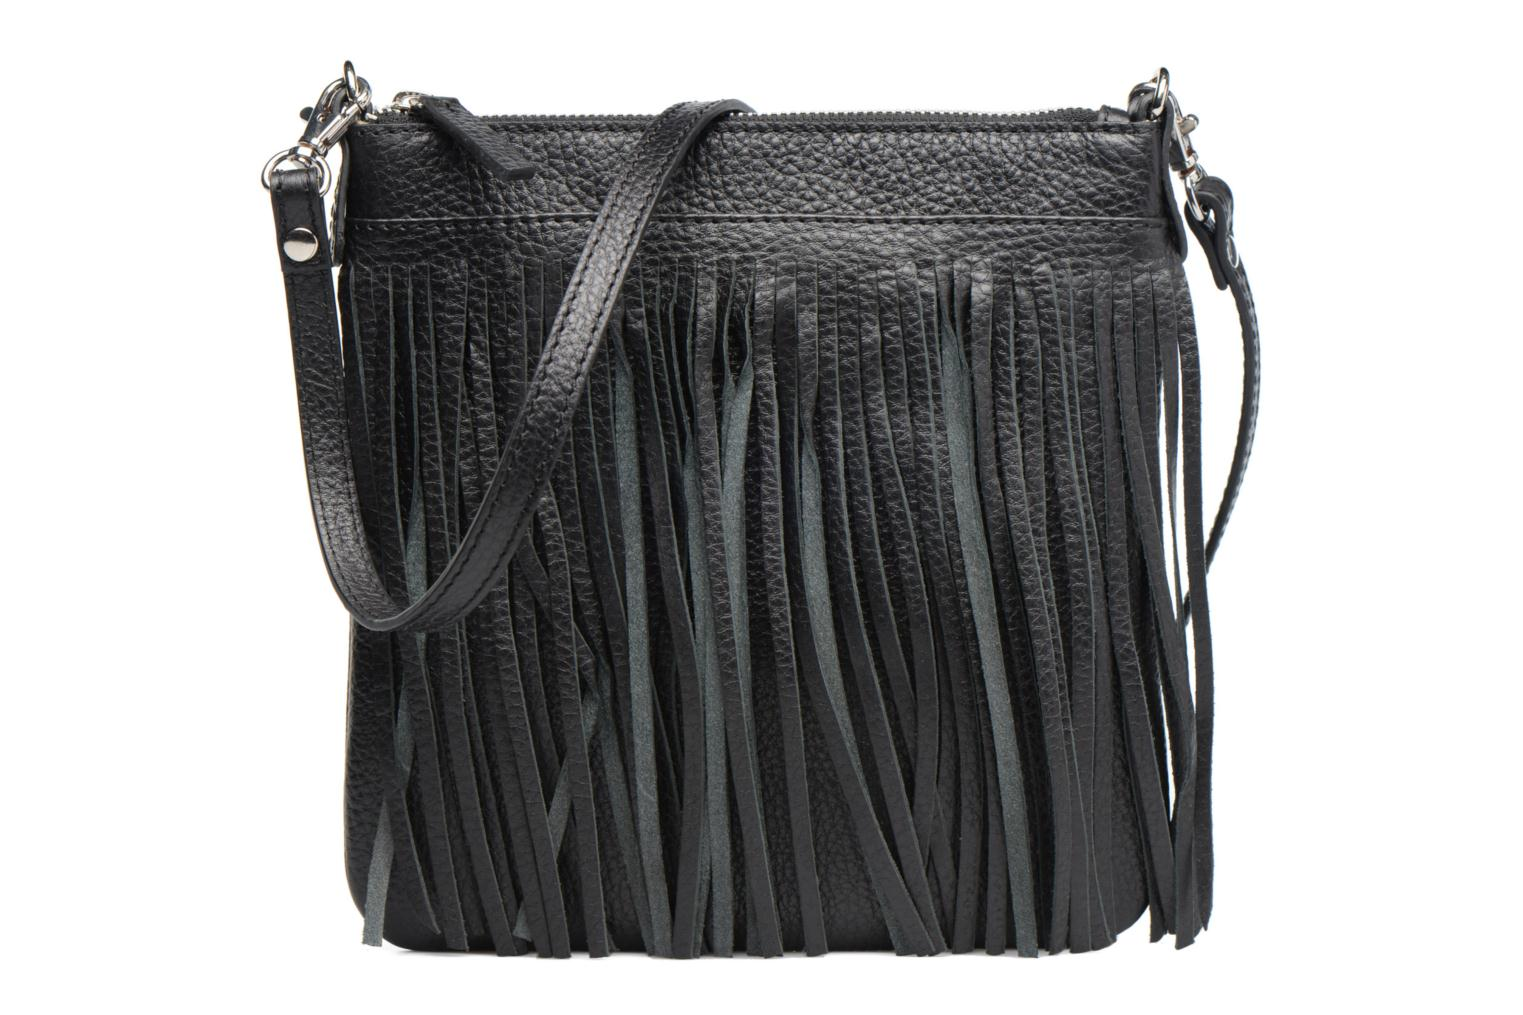 Pochette Floppy Franges Black